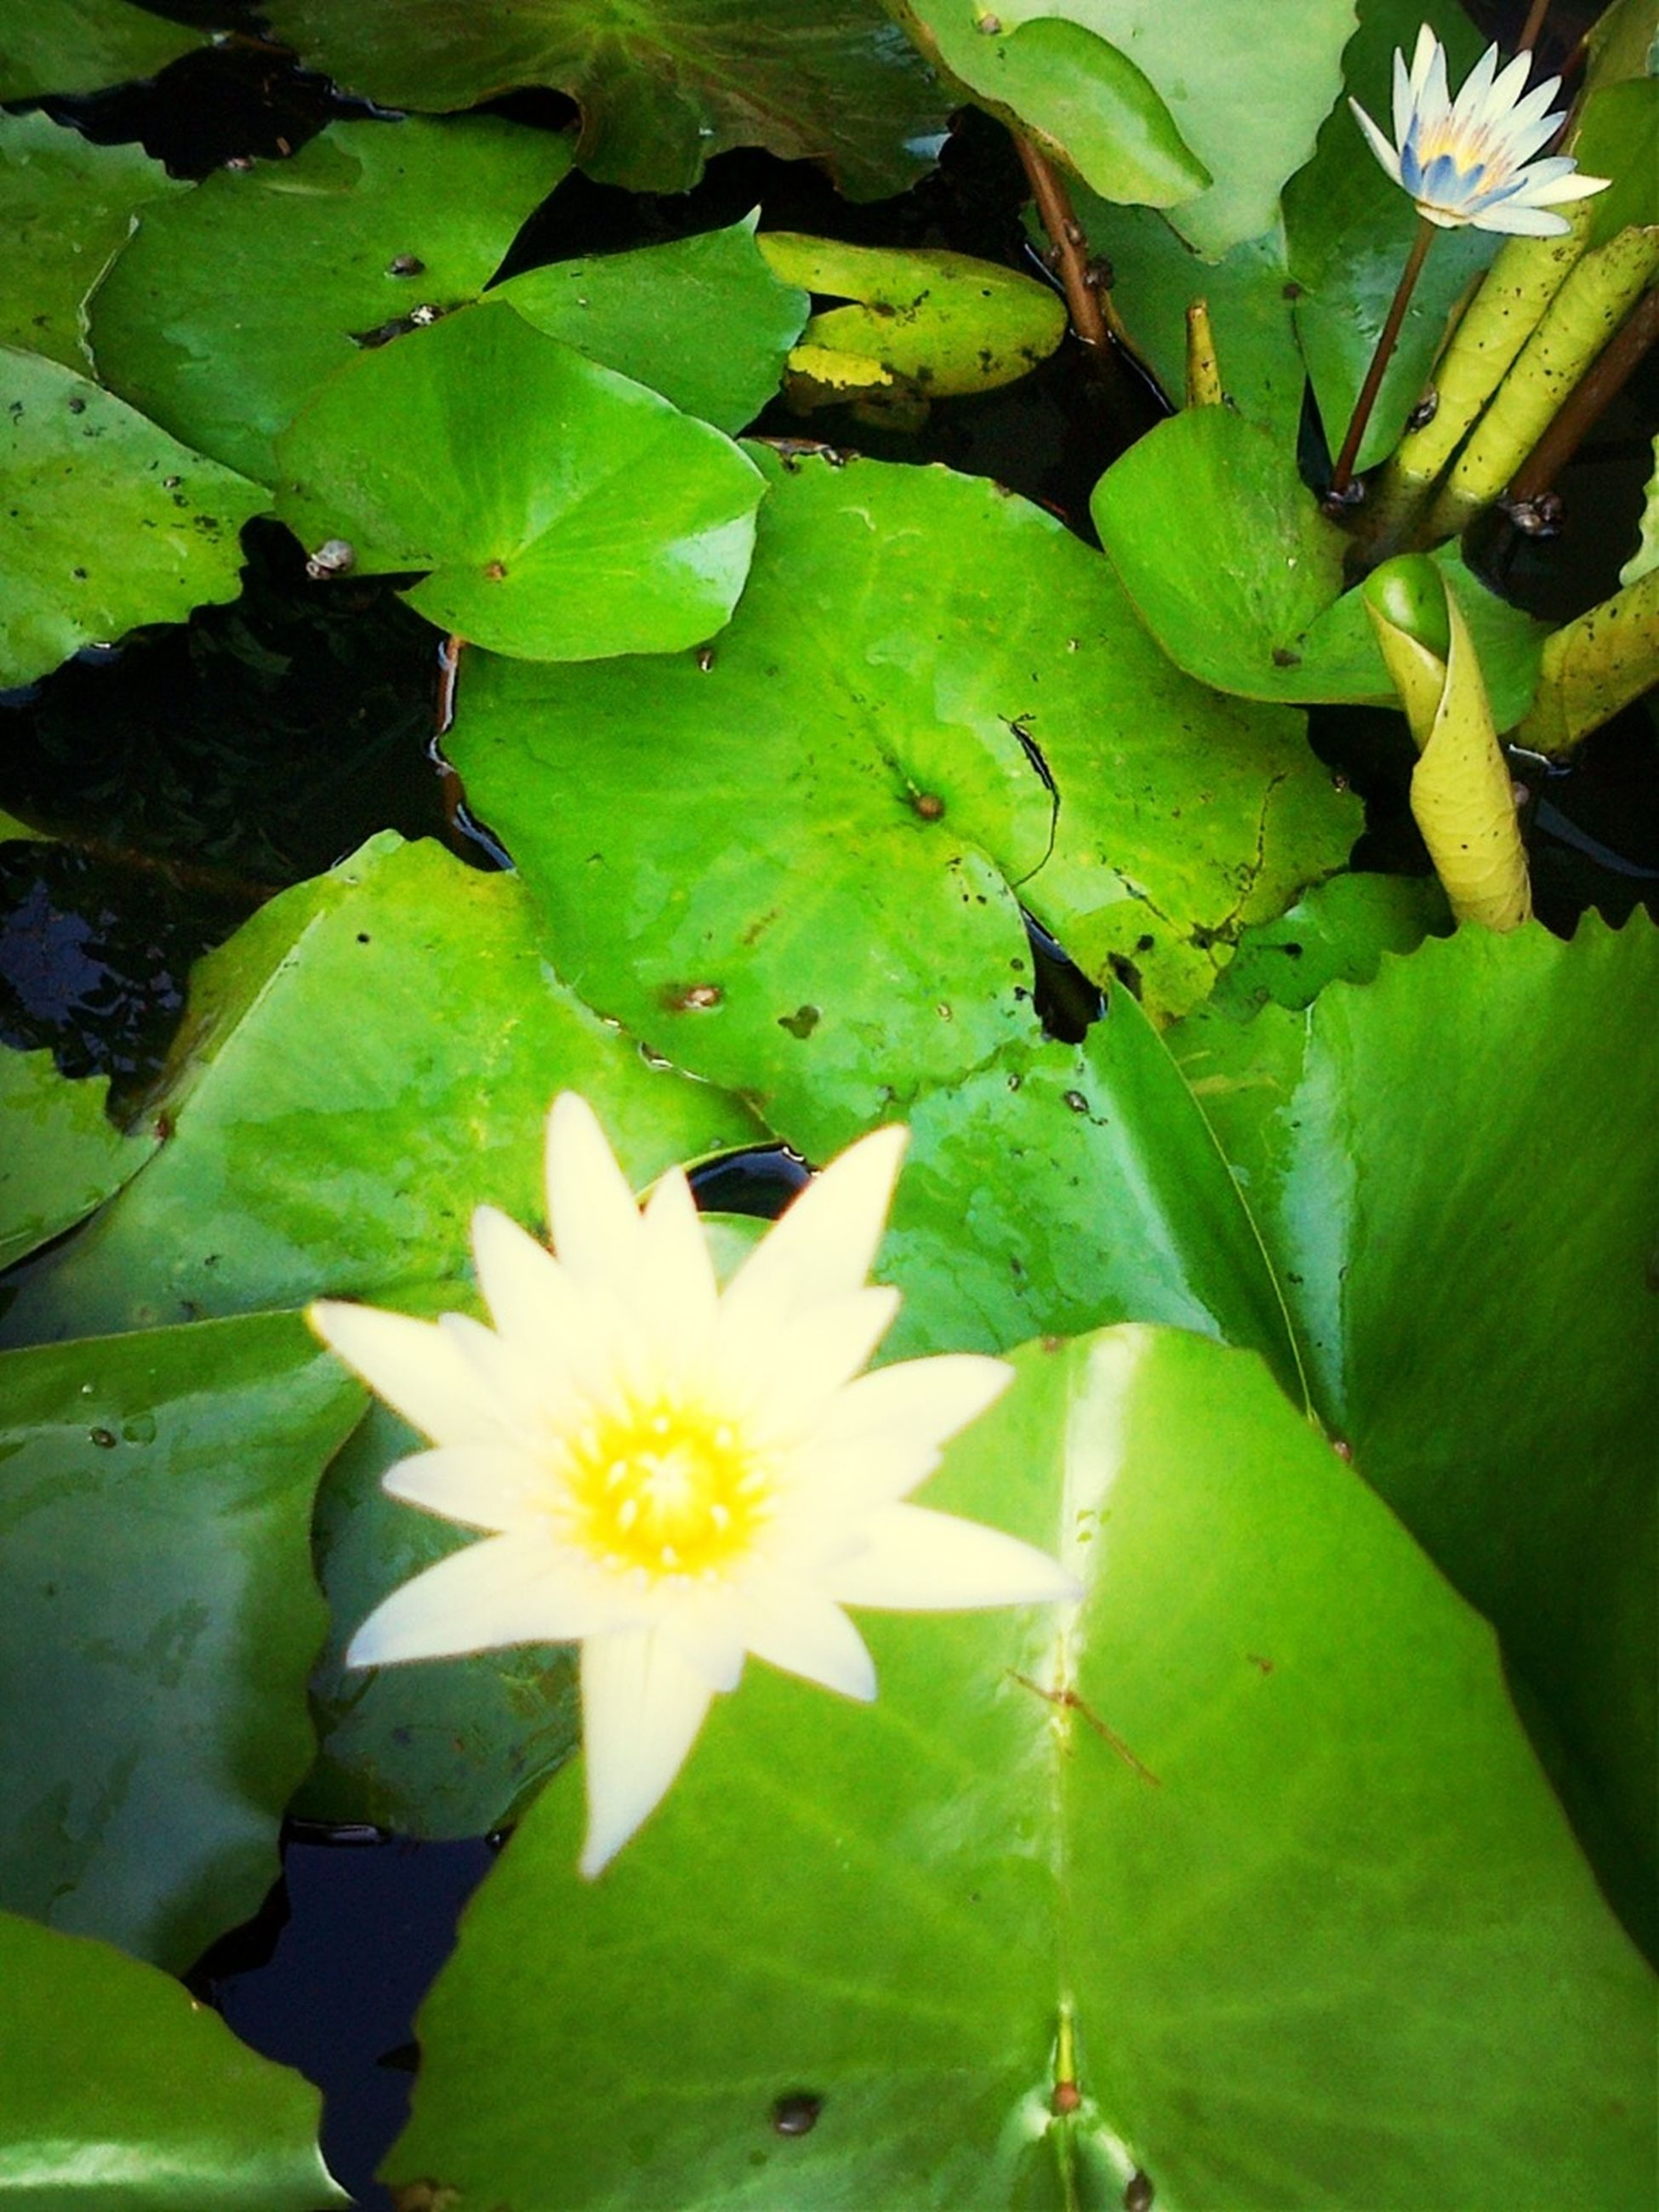 leaf, flower, water lily, freshness, water, growth, fragility, petal, floating on water, pond, high angle view, beauty in nature, green color, plant, nature, flower head, lotus water lily, blooming, white color, close-up